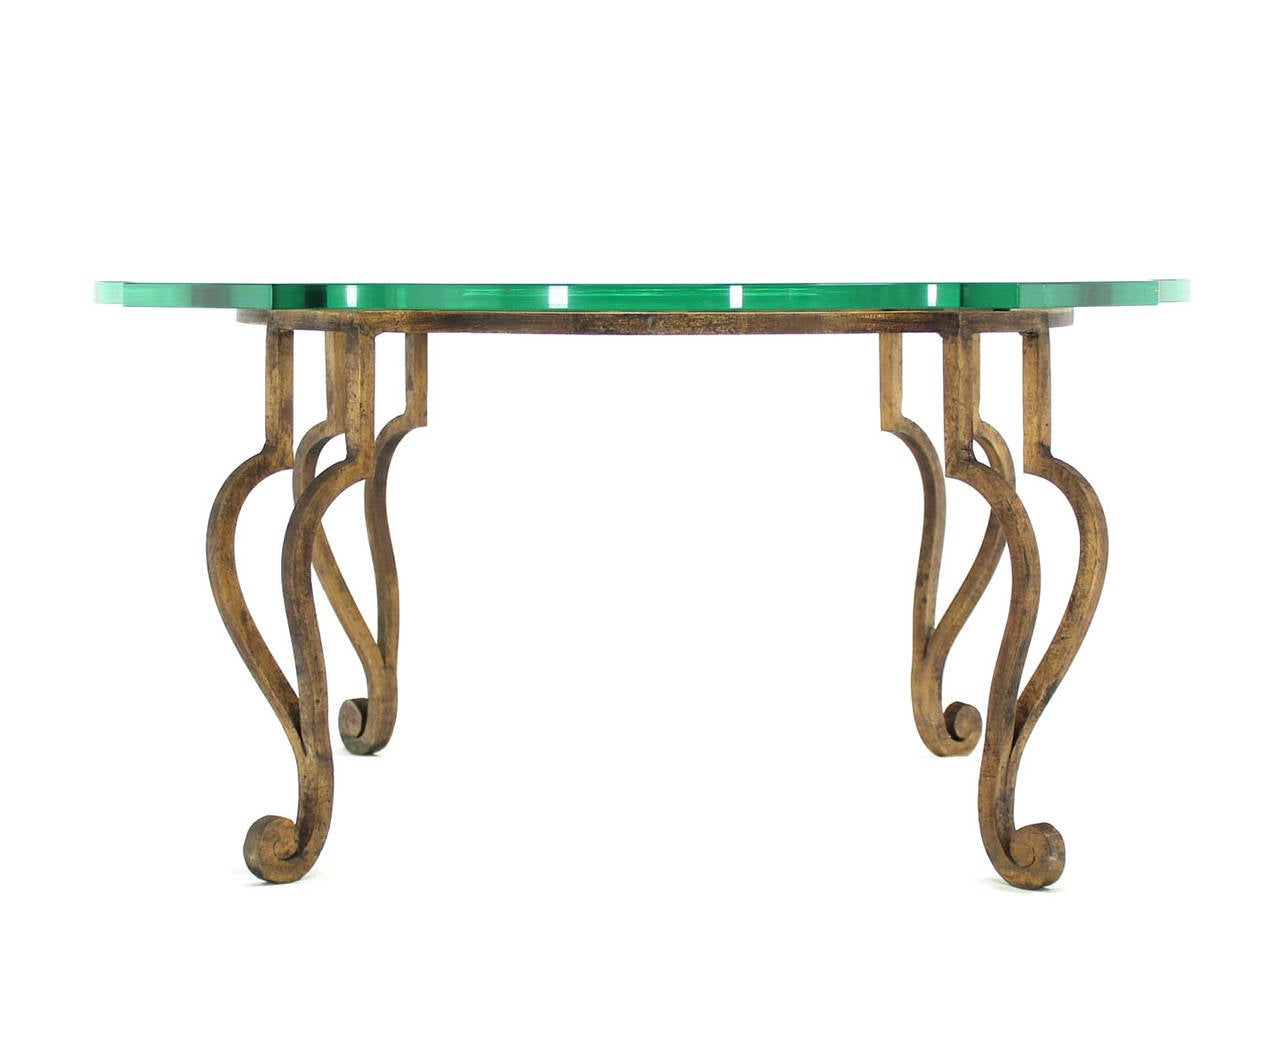 Figural wrought iron base coffee table with thick glass top for sale at 1stdibs Glass coffee table base